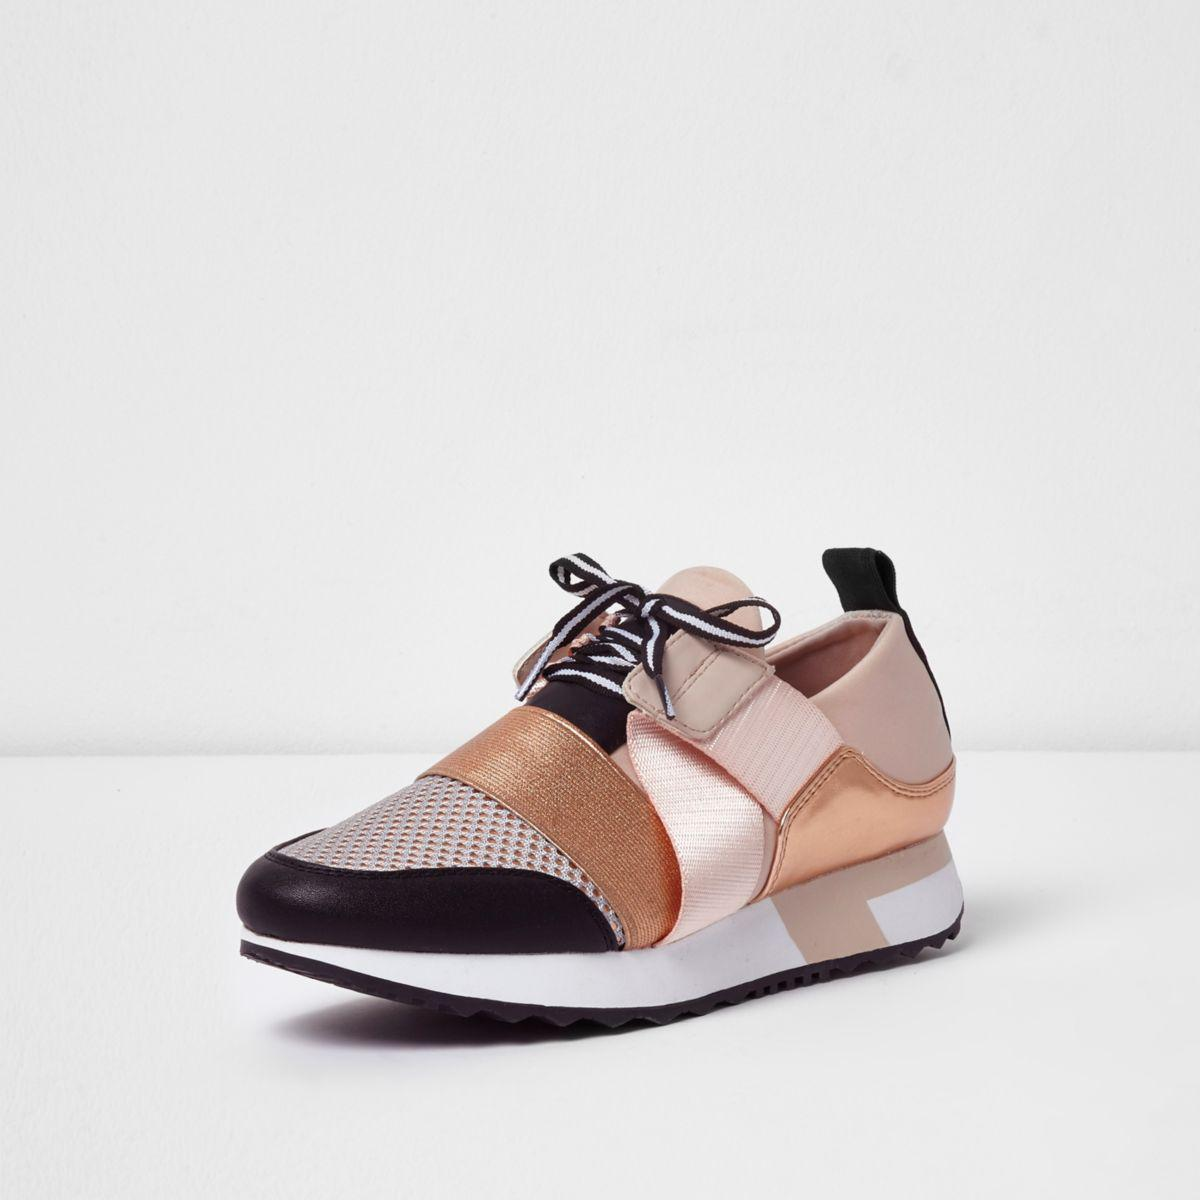 Lyst - River Island Rose Gold Metallic Lace-up Runner ... Rick Owens Shoes Women